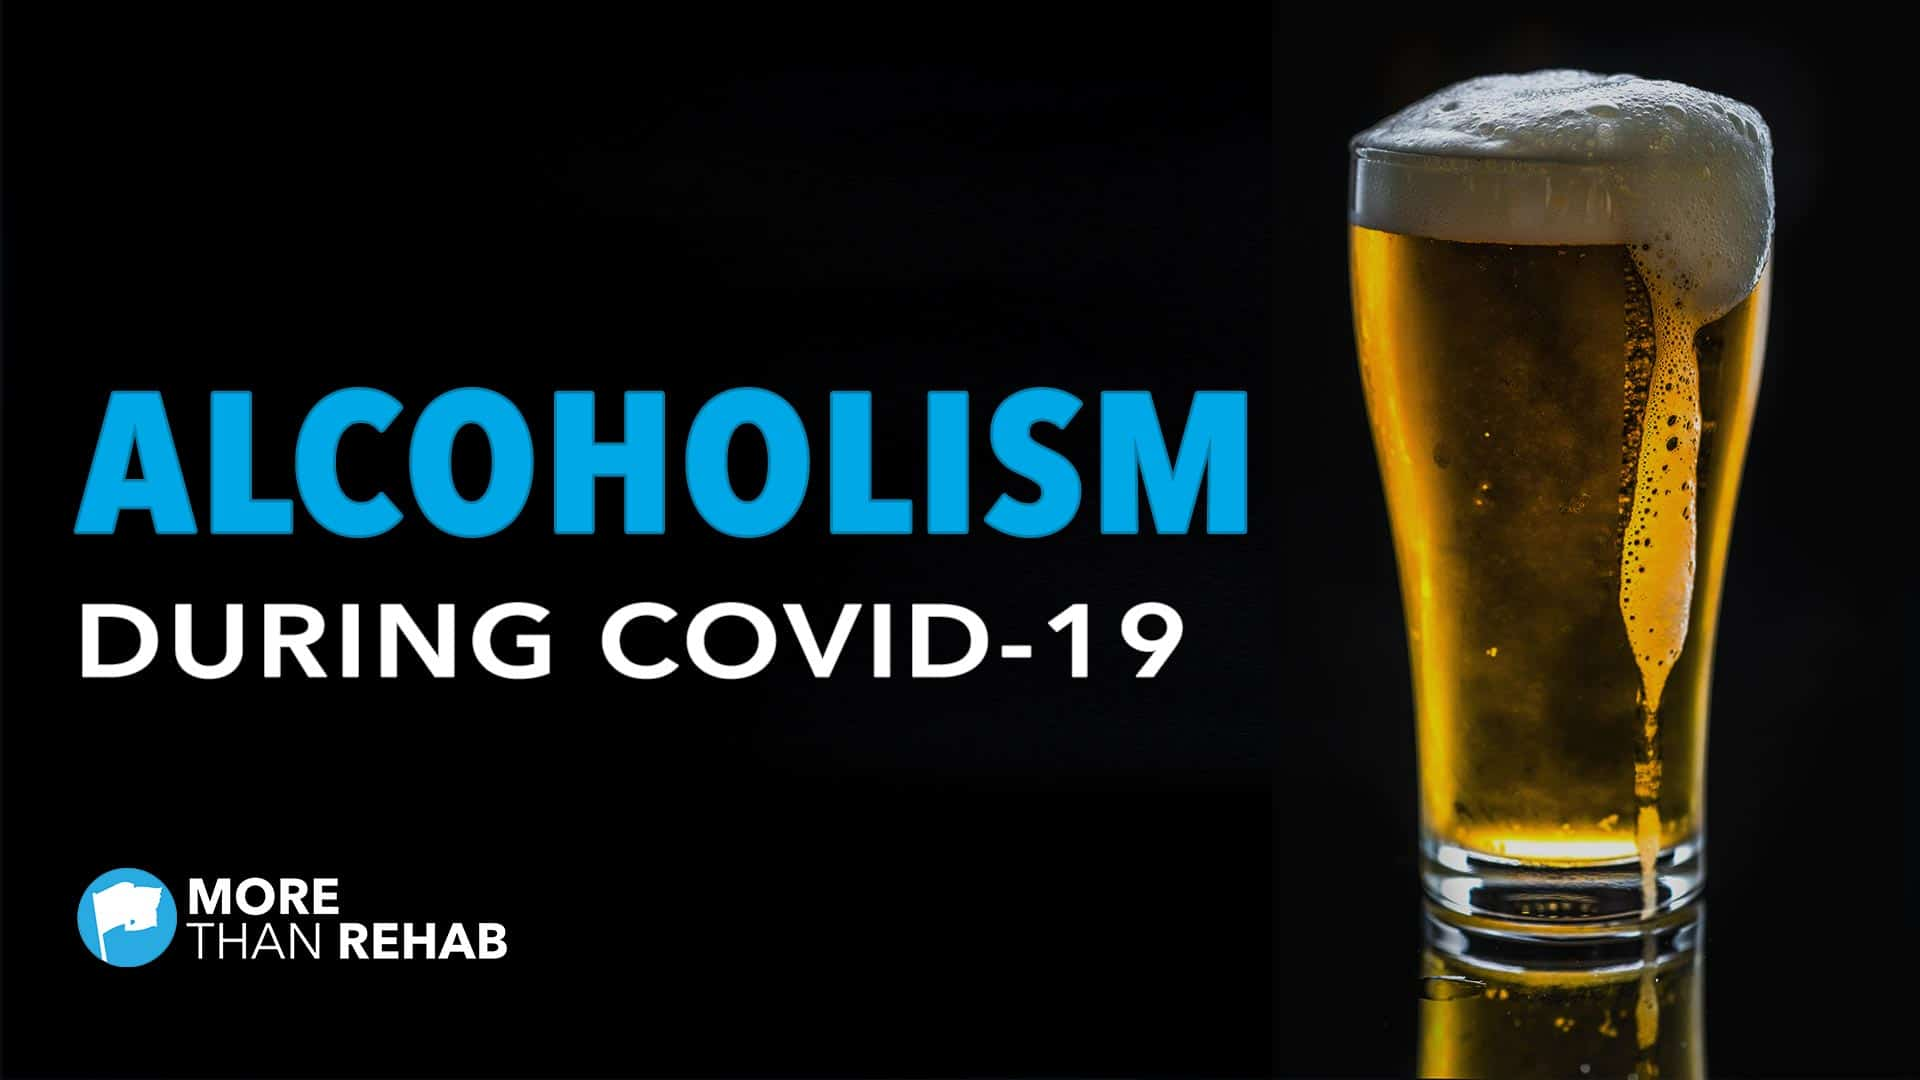 alcoholism-is-on-the-rise-due-to-COVID-19-coronavirus-pandemic